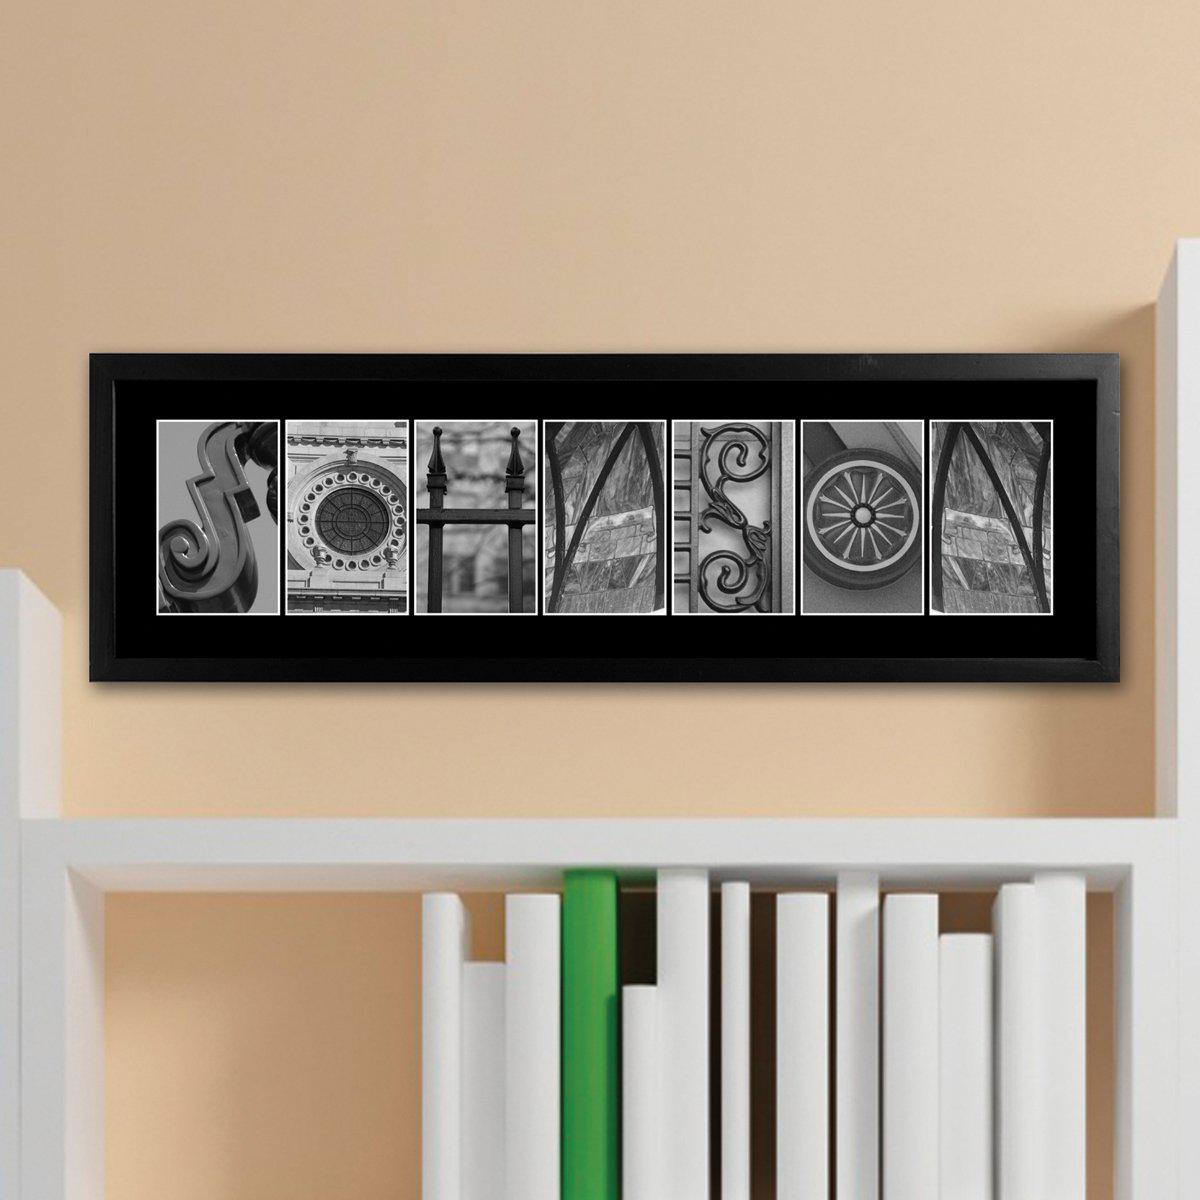 Personalized Family Name Signs - Architectural Elements Alphabet - Black and White